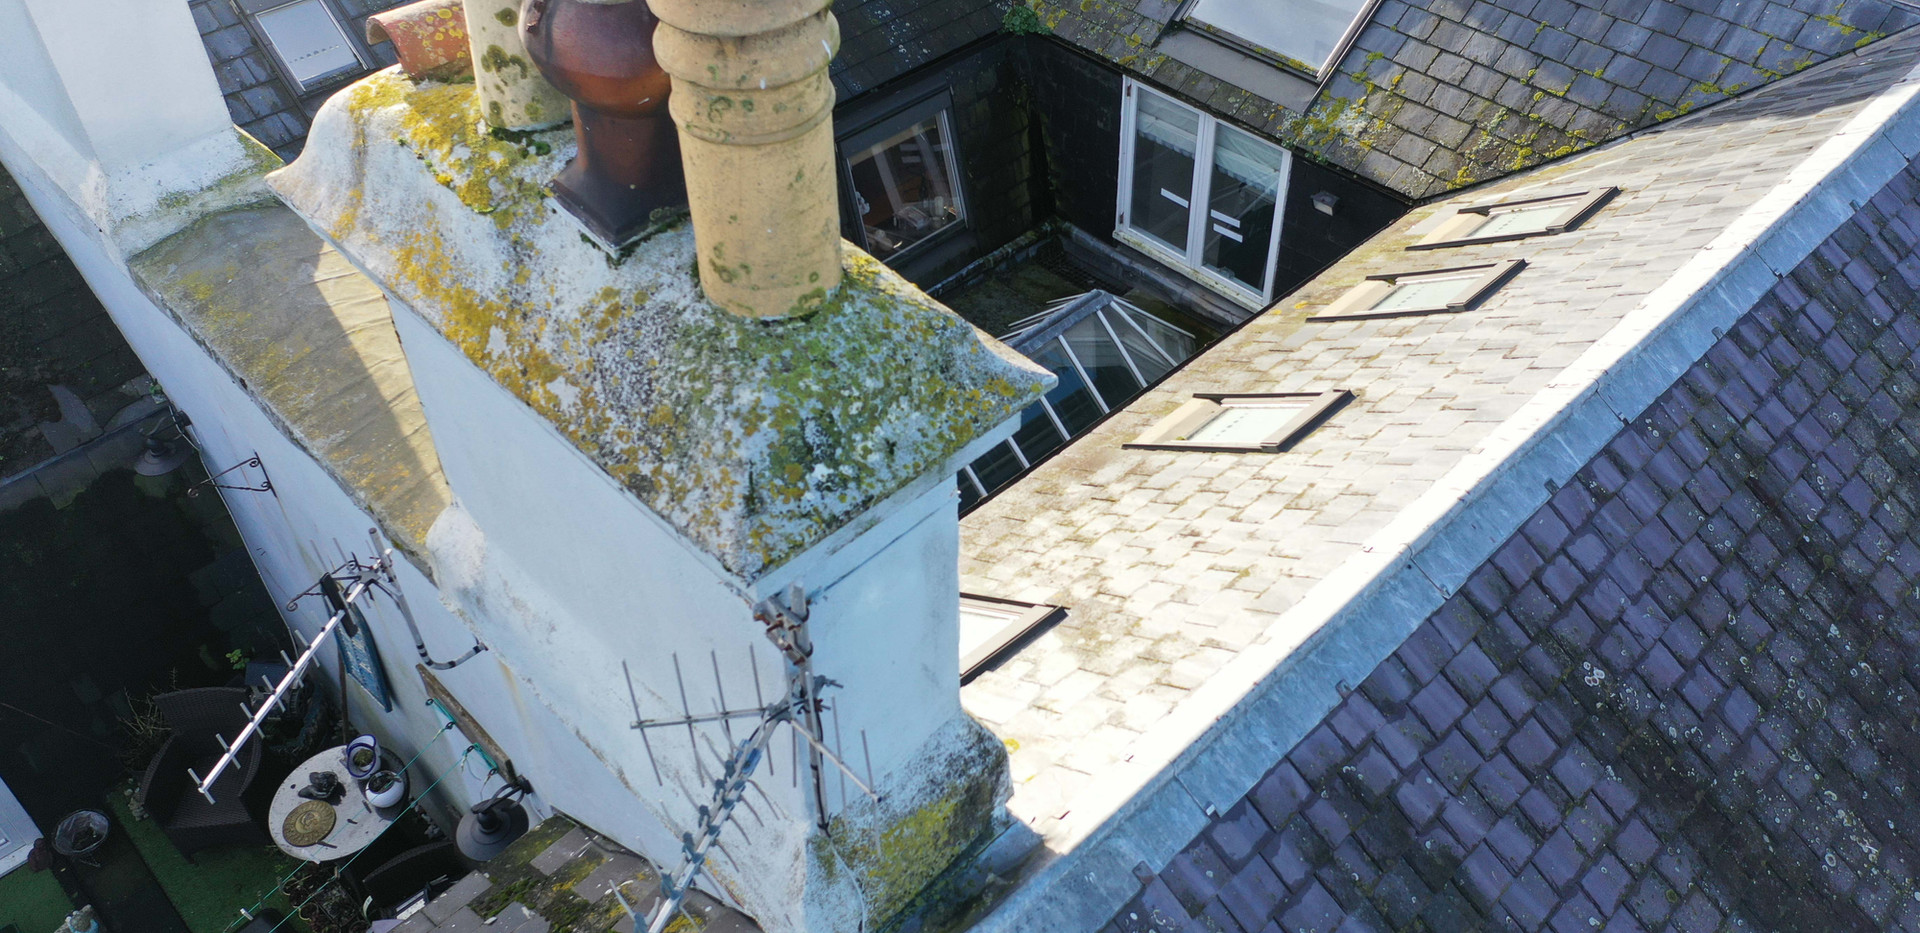 Roof survey of a damaged roof with a drone